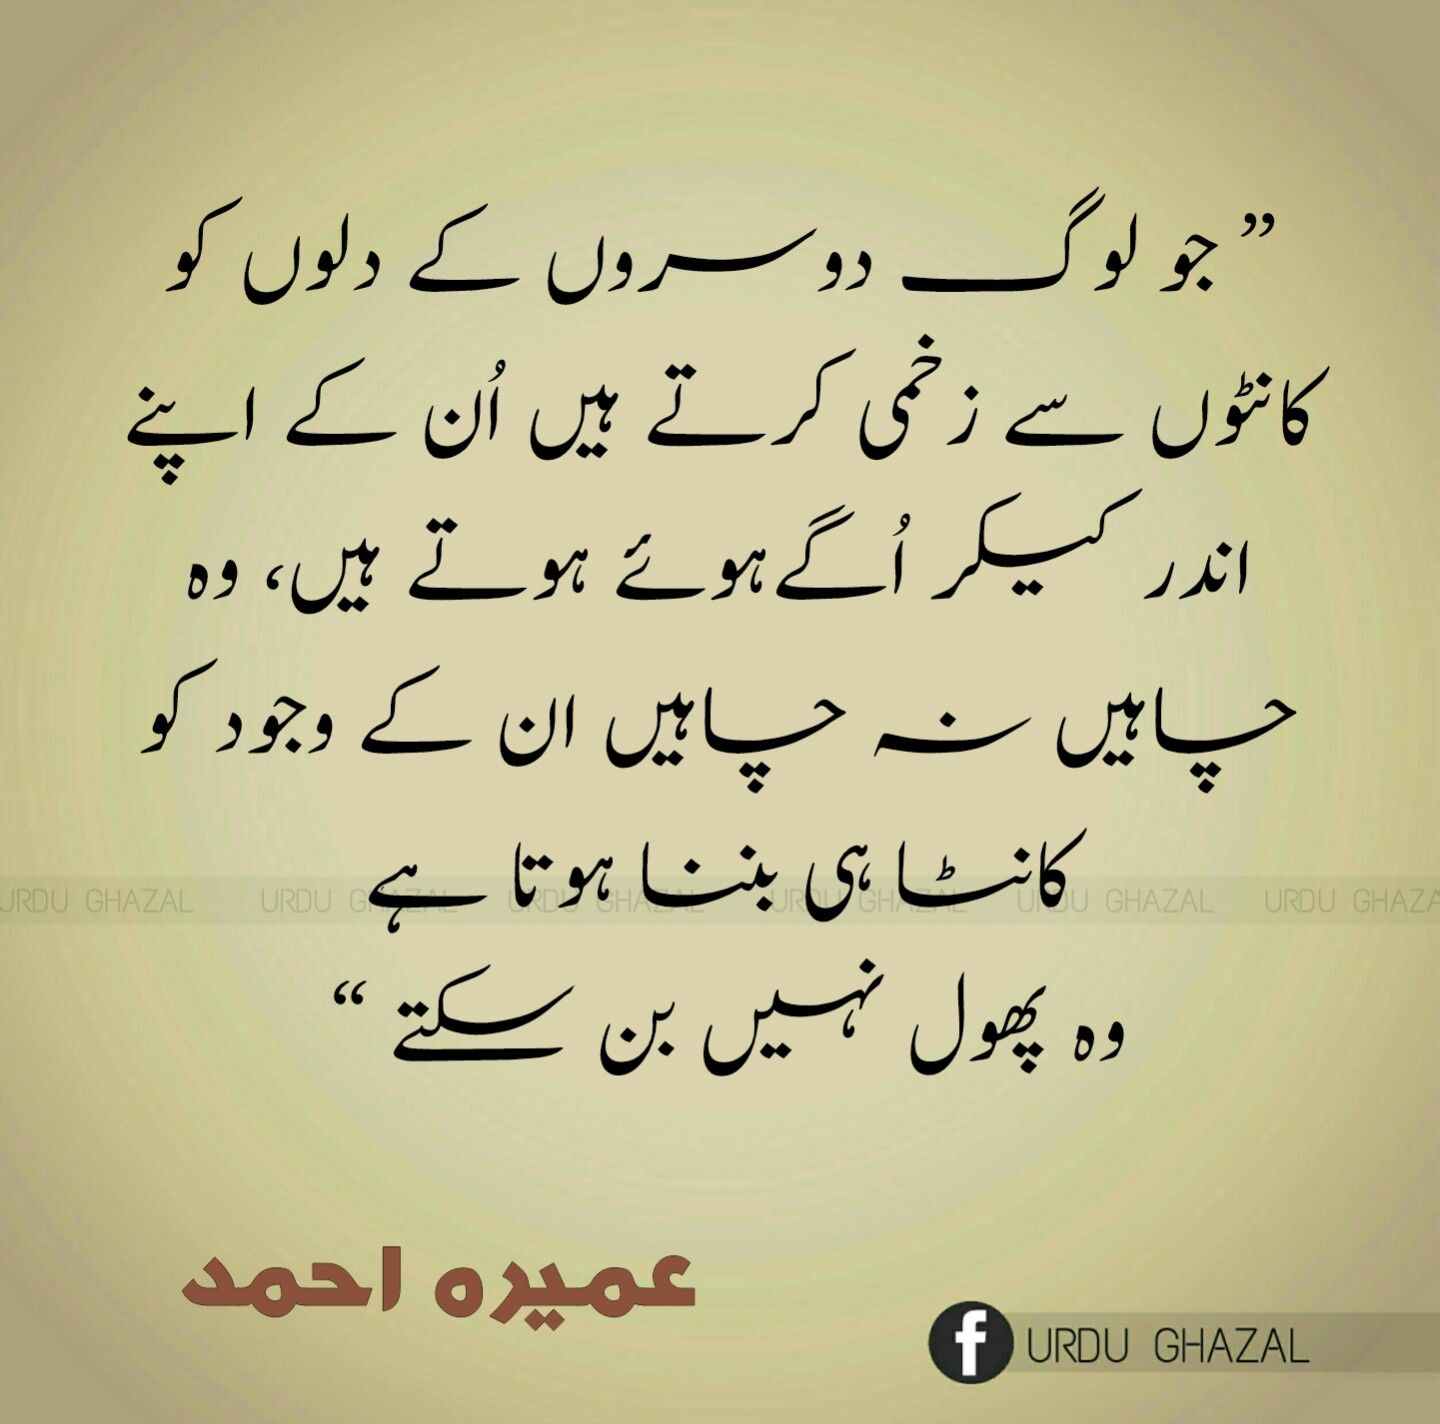 Sheikh Saad Wisdom Urdu Quotes Quotes And